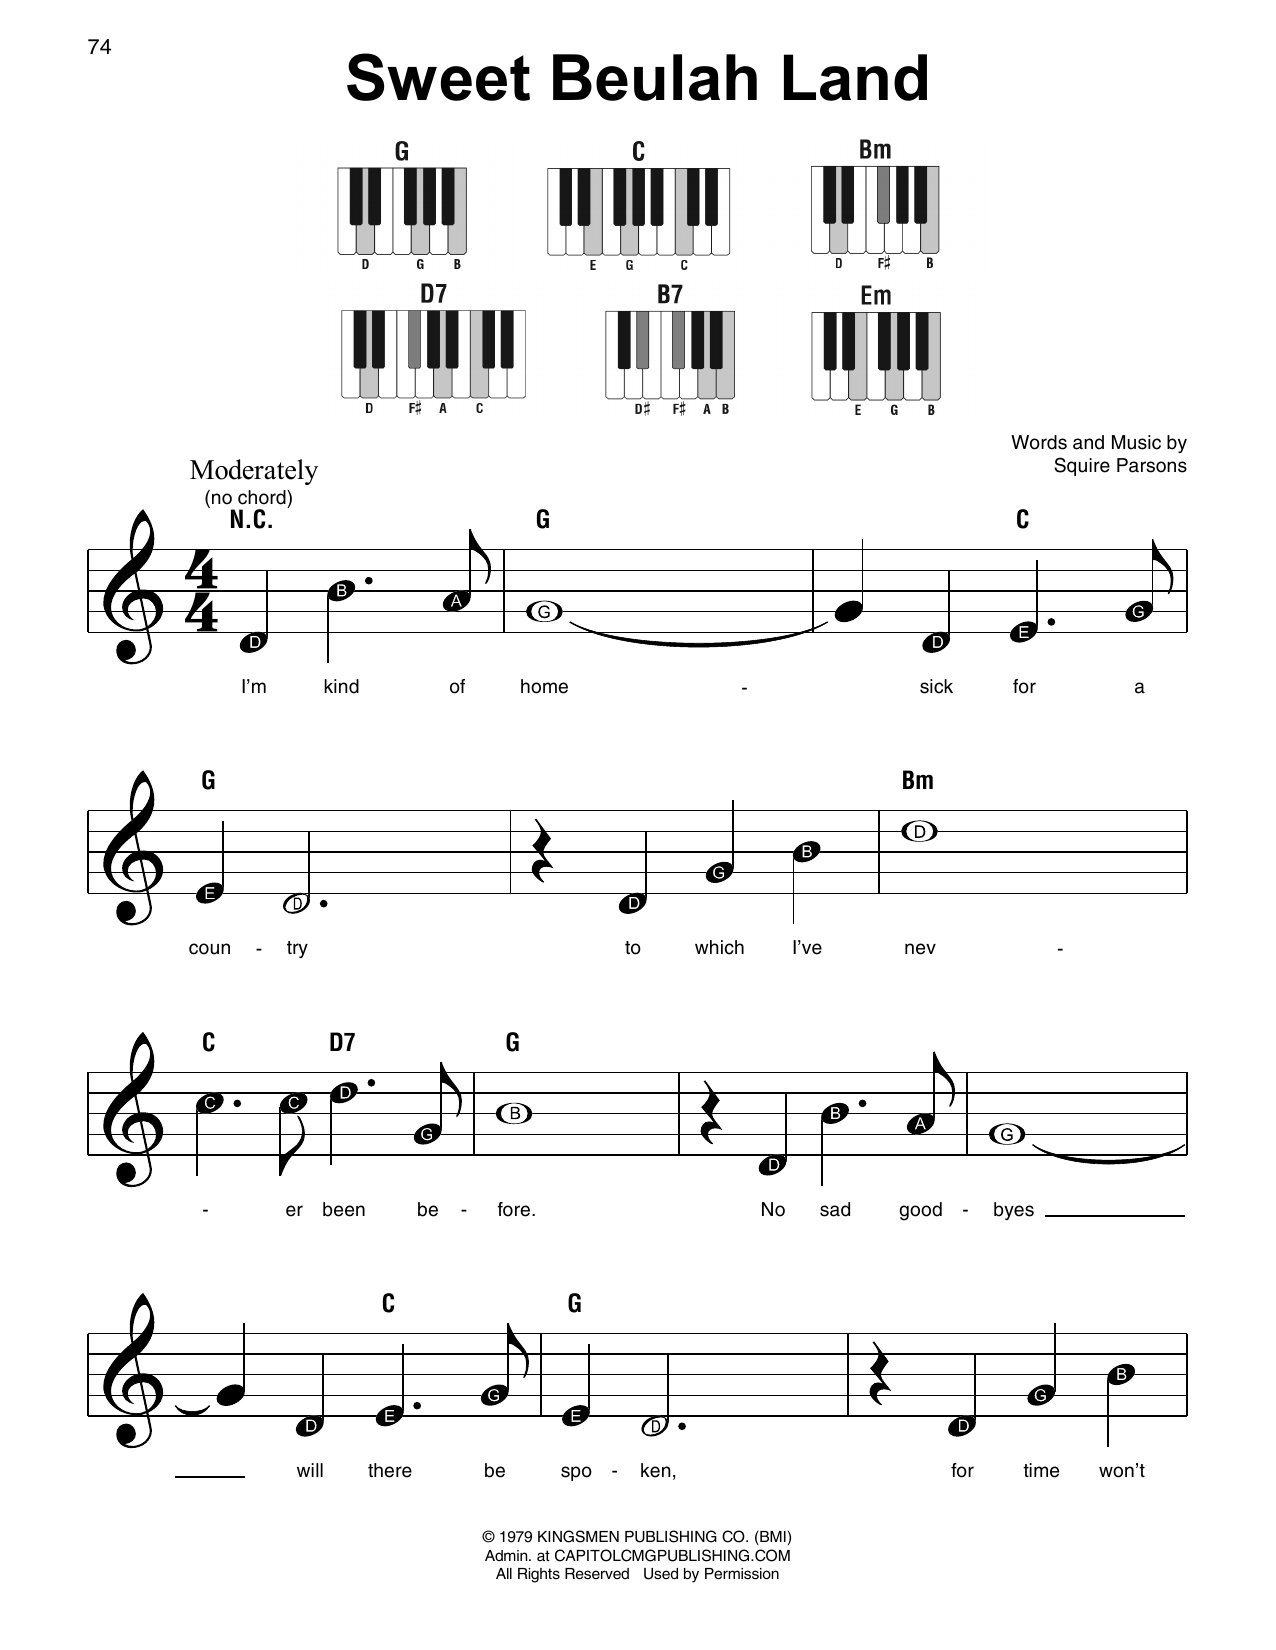 picture regarding Free Printable Gospel Sheet Music for Piano named Squire Parsons Cute Beulah Land Sheet Audio Notes, Chords Obtain Printable Tremendous Uncomplicated Piano - SKU: 409552